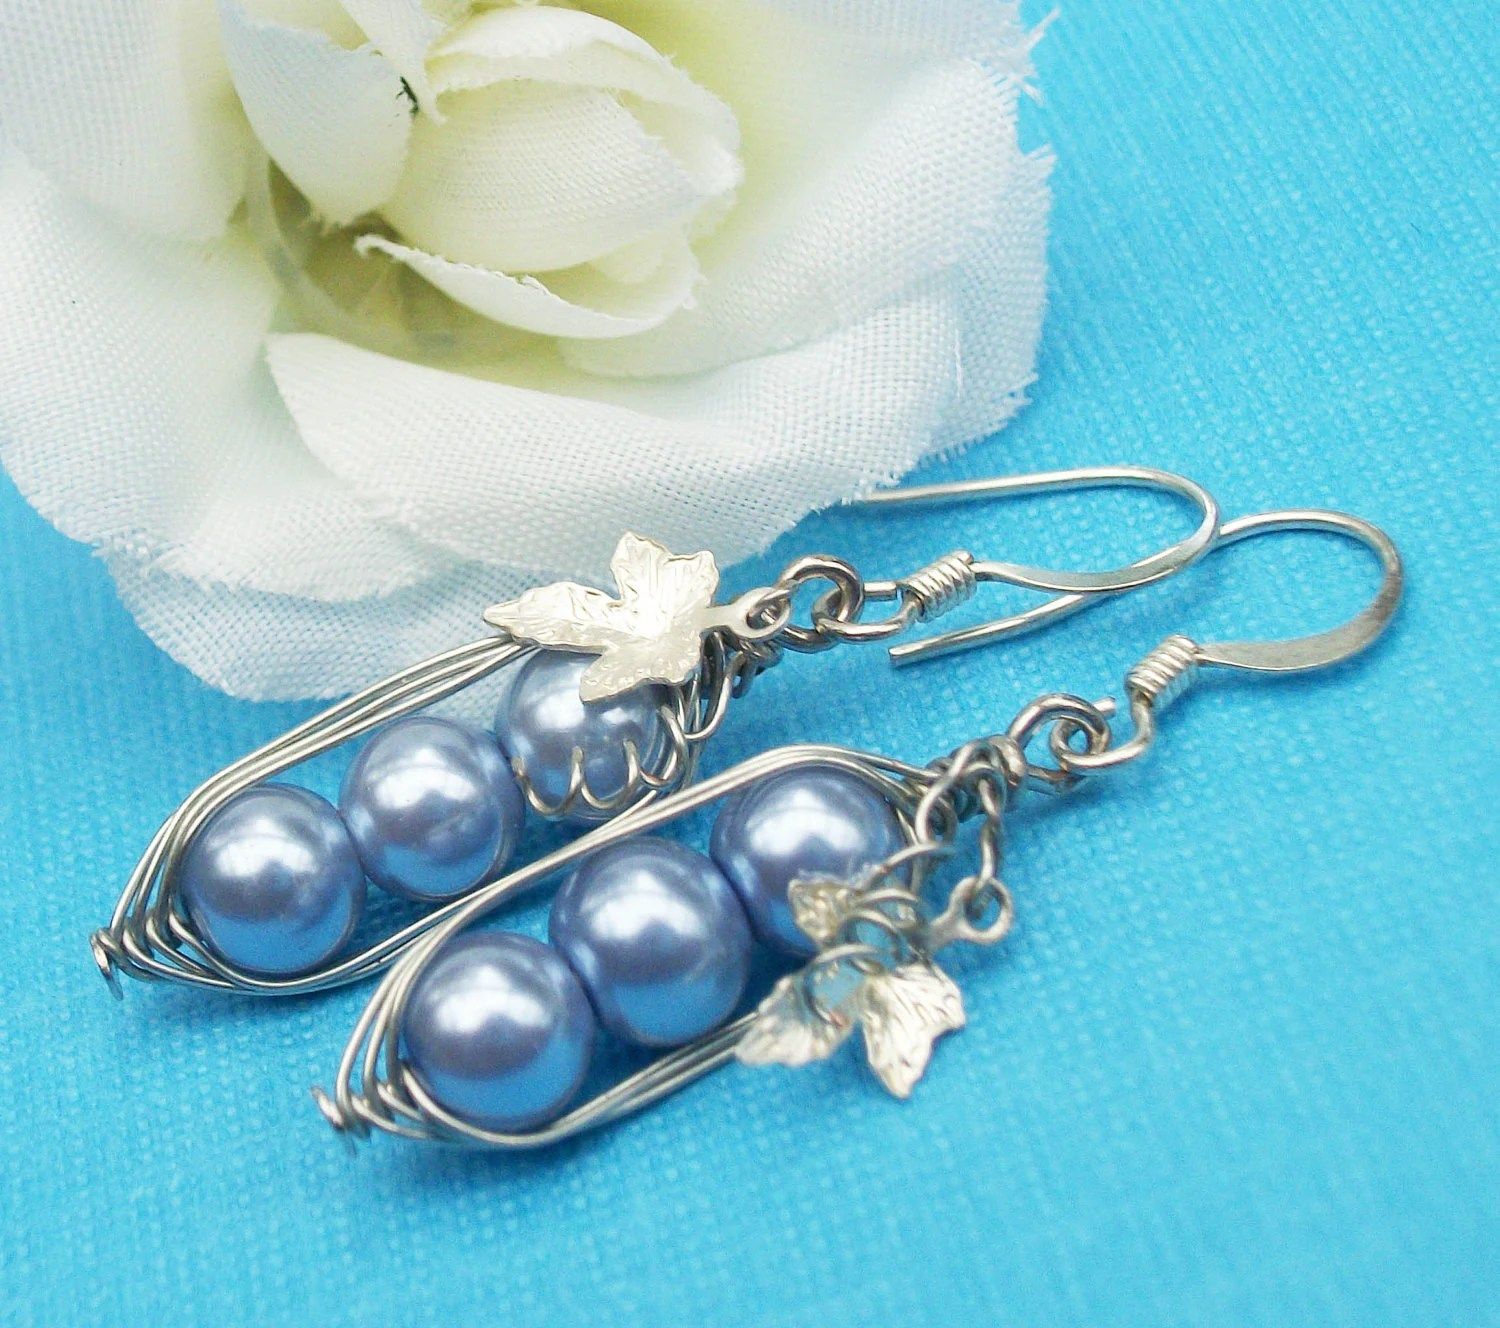 Three Peas In A Pod Silver Earrings You Choose The Color. For Brides,Family,Best Friends,Sisters And Mothers